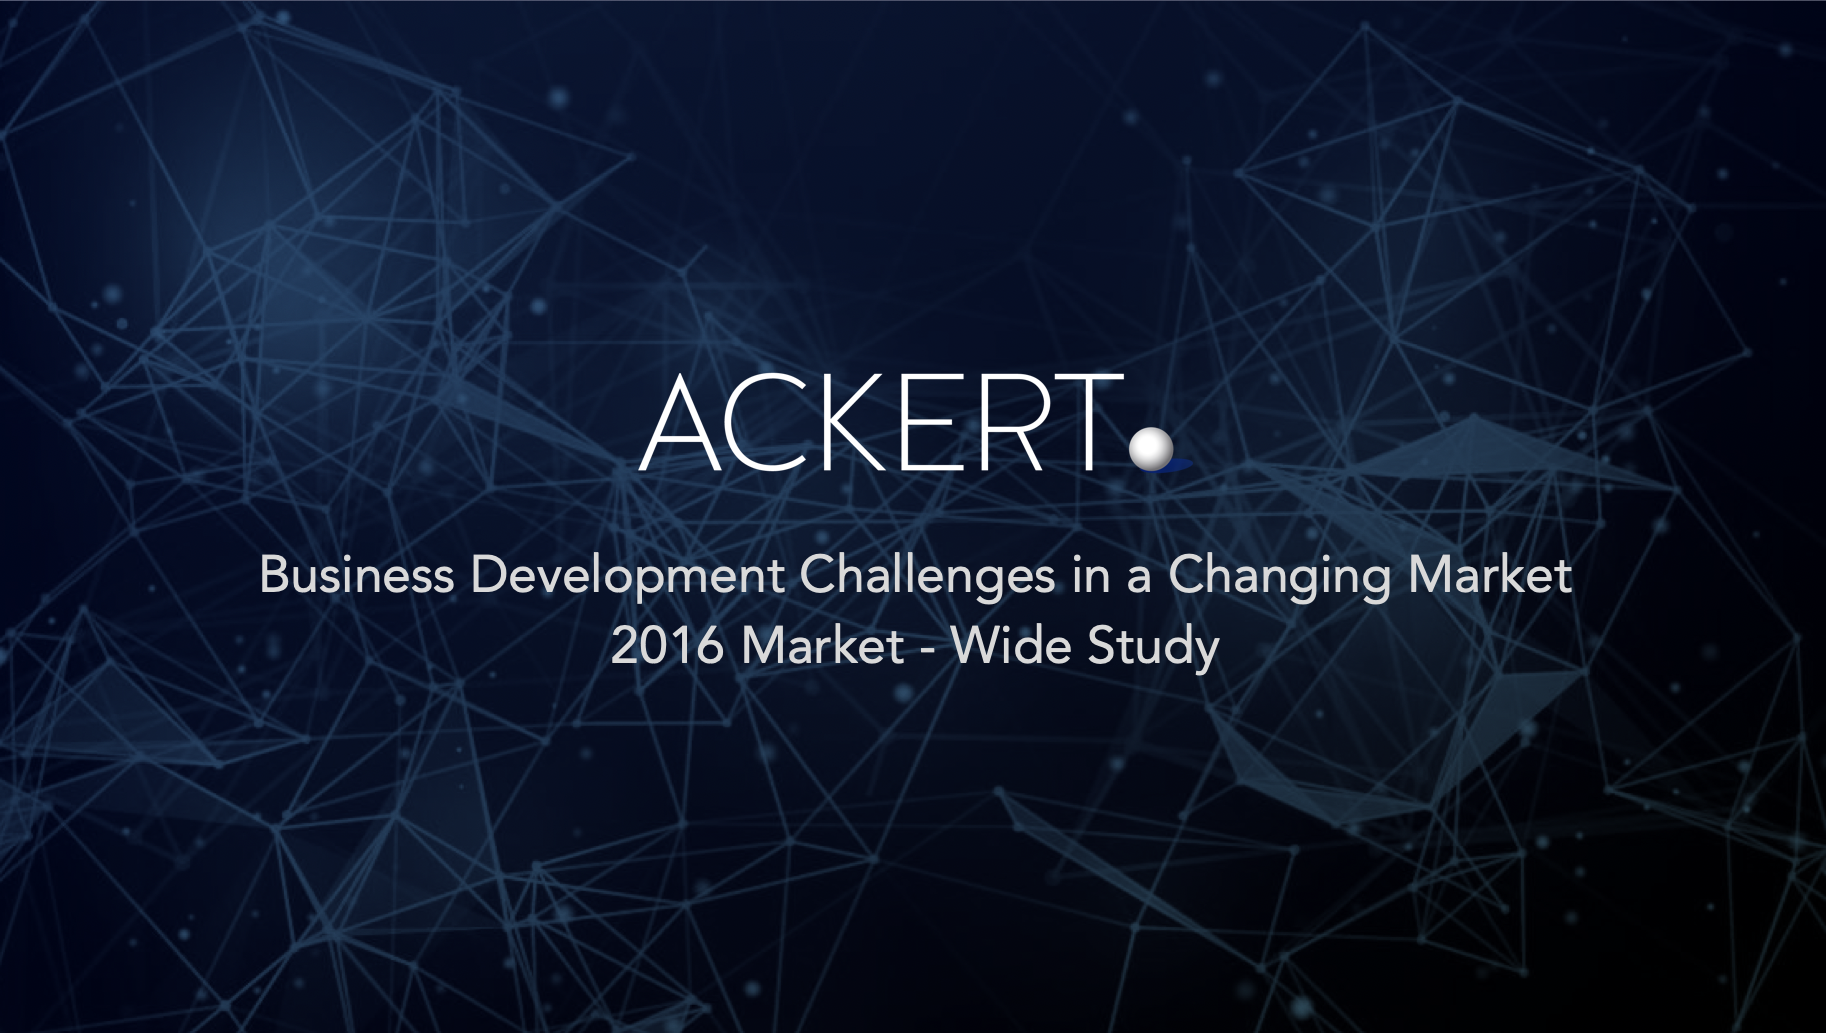 header ackert business development challenges 2016 market-wide study